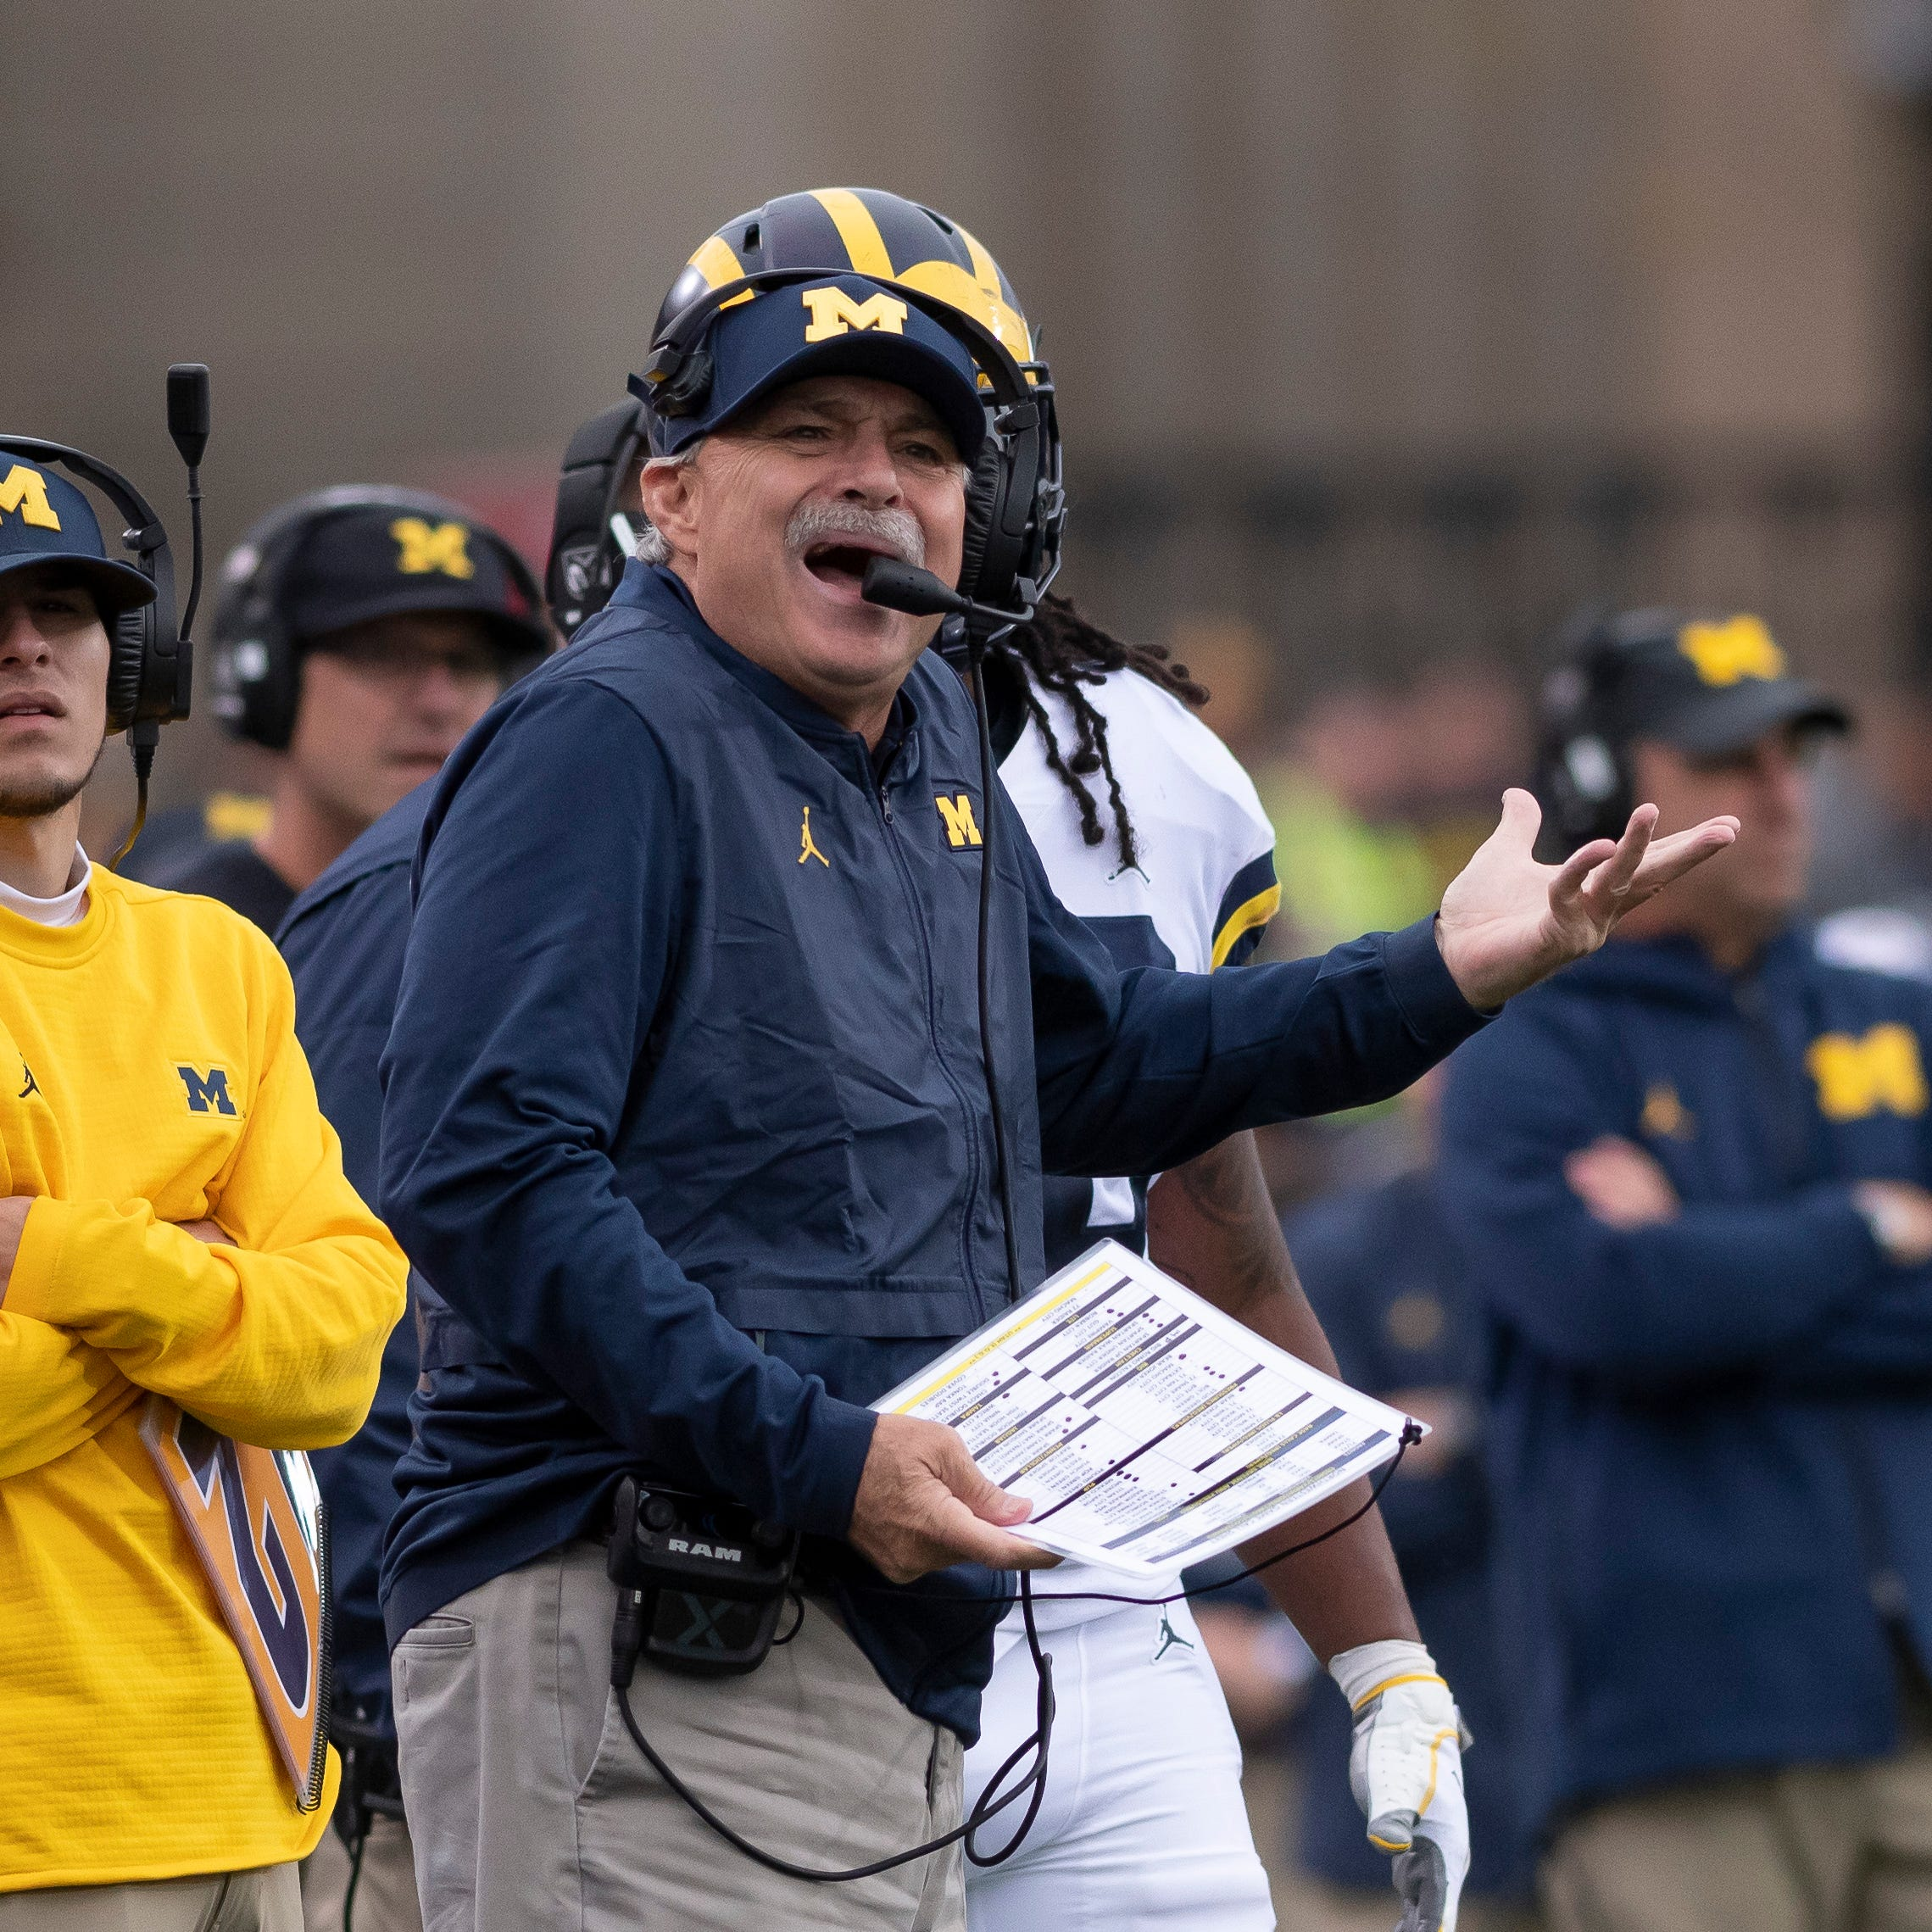 Reports: Michigan's Don Brown interviews for Temple job, but Diaz the choice